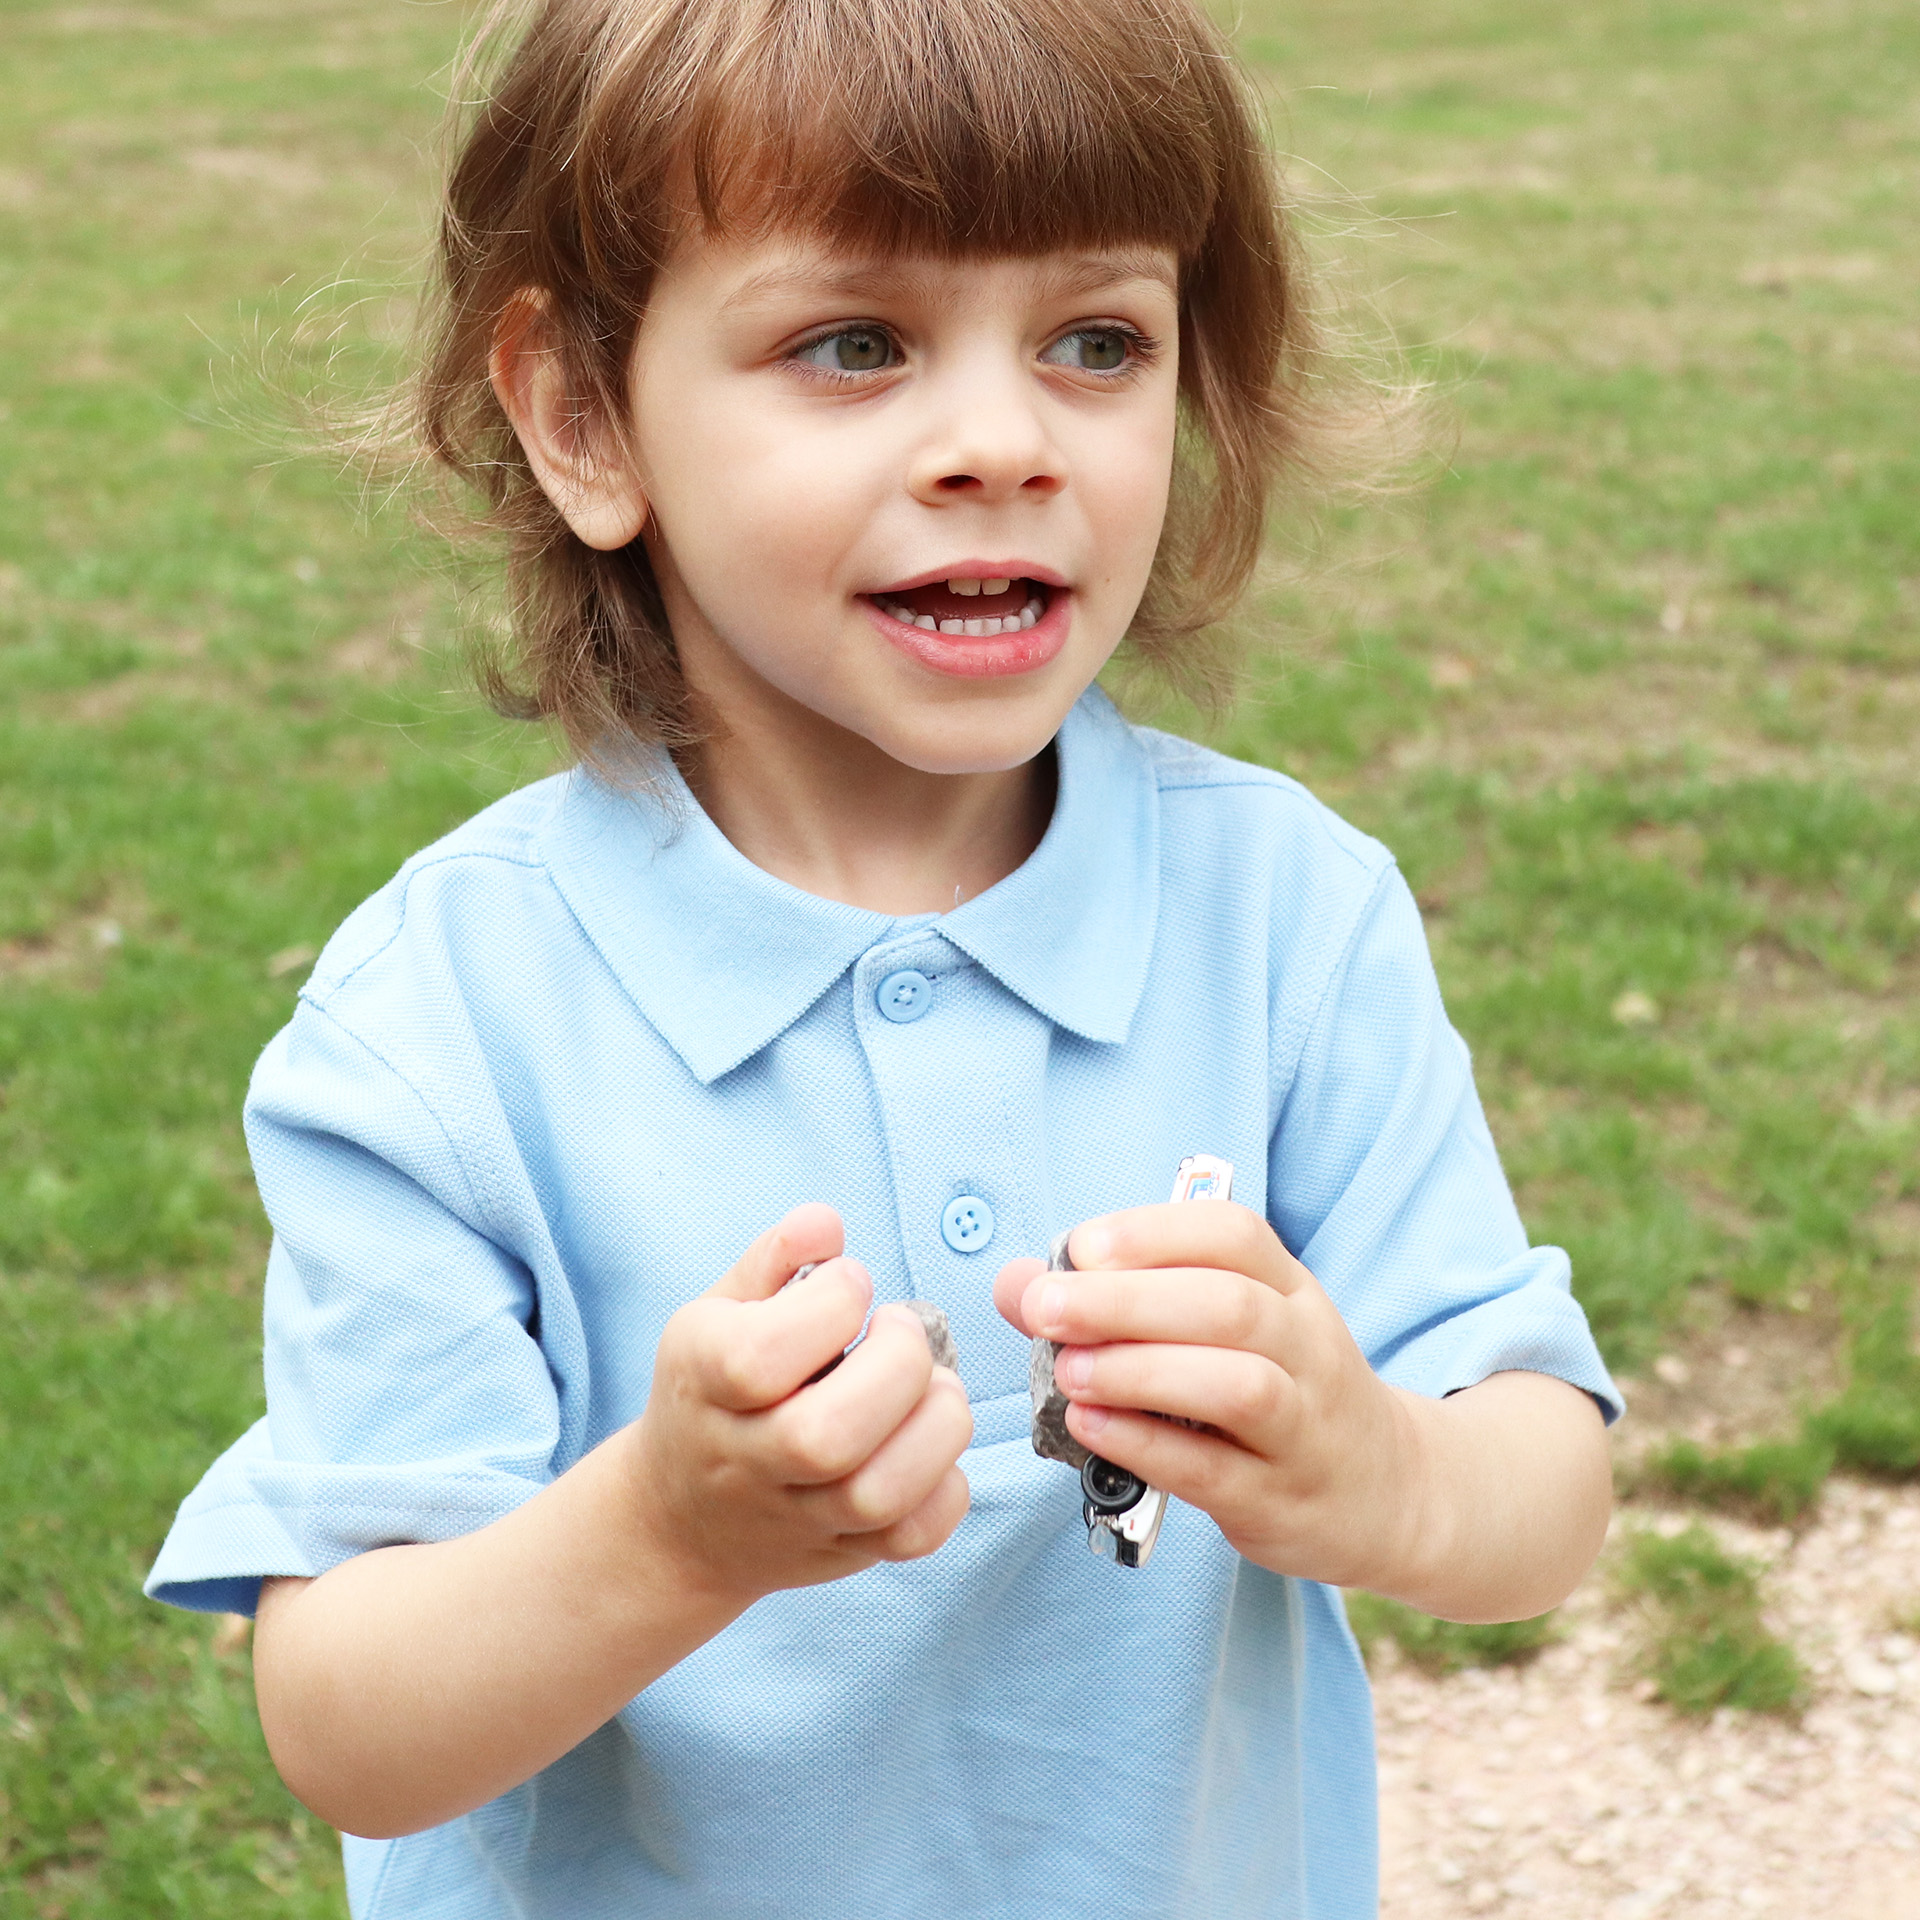 Child in school uniform playing with cars outdoors